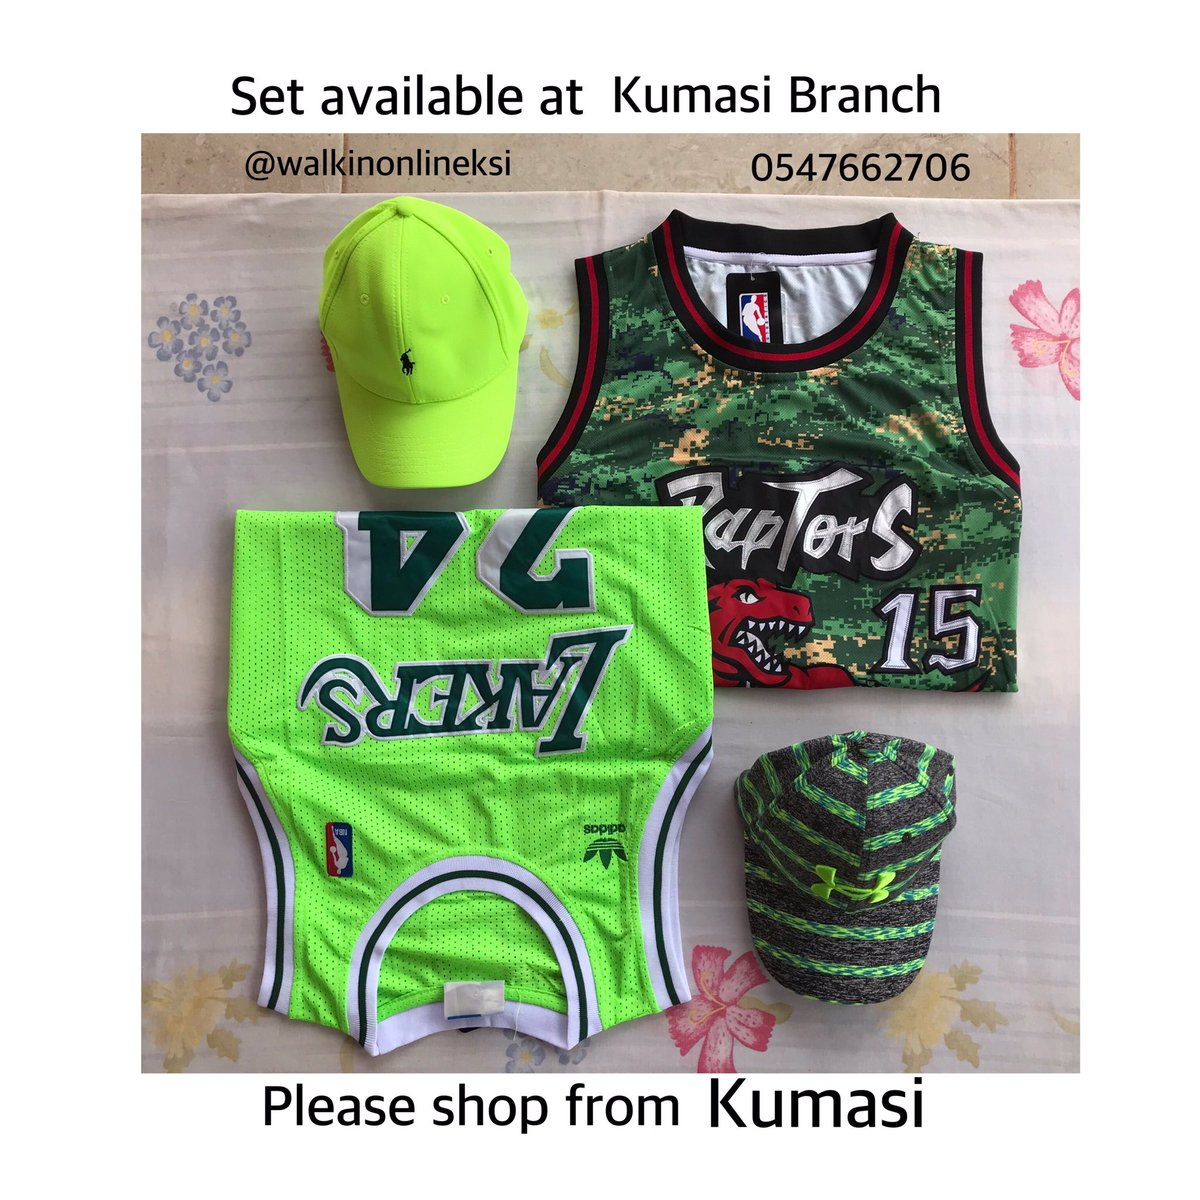 These are set available at our Kumasi Branch.Prices ranging from Gh¢40 -Gh¢70.Please contact our Kumasi Branch on 0547662706 to place an order. Thank you   Nungua Cardi B #ItCanBe #WontumiSports #Benin2020 Stonebwoy lutterodt #GhanaYouthManifesto #2020ElectionAndBeyond<br>http://pic.twitter.com/6Lk7dg1xMI